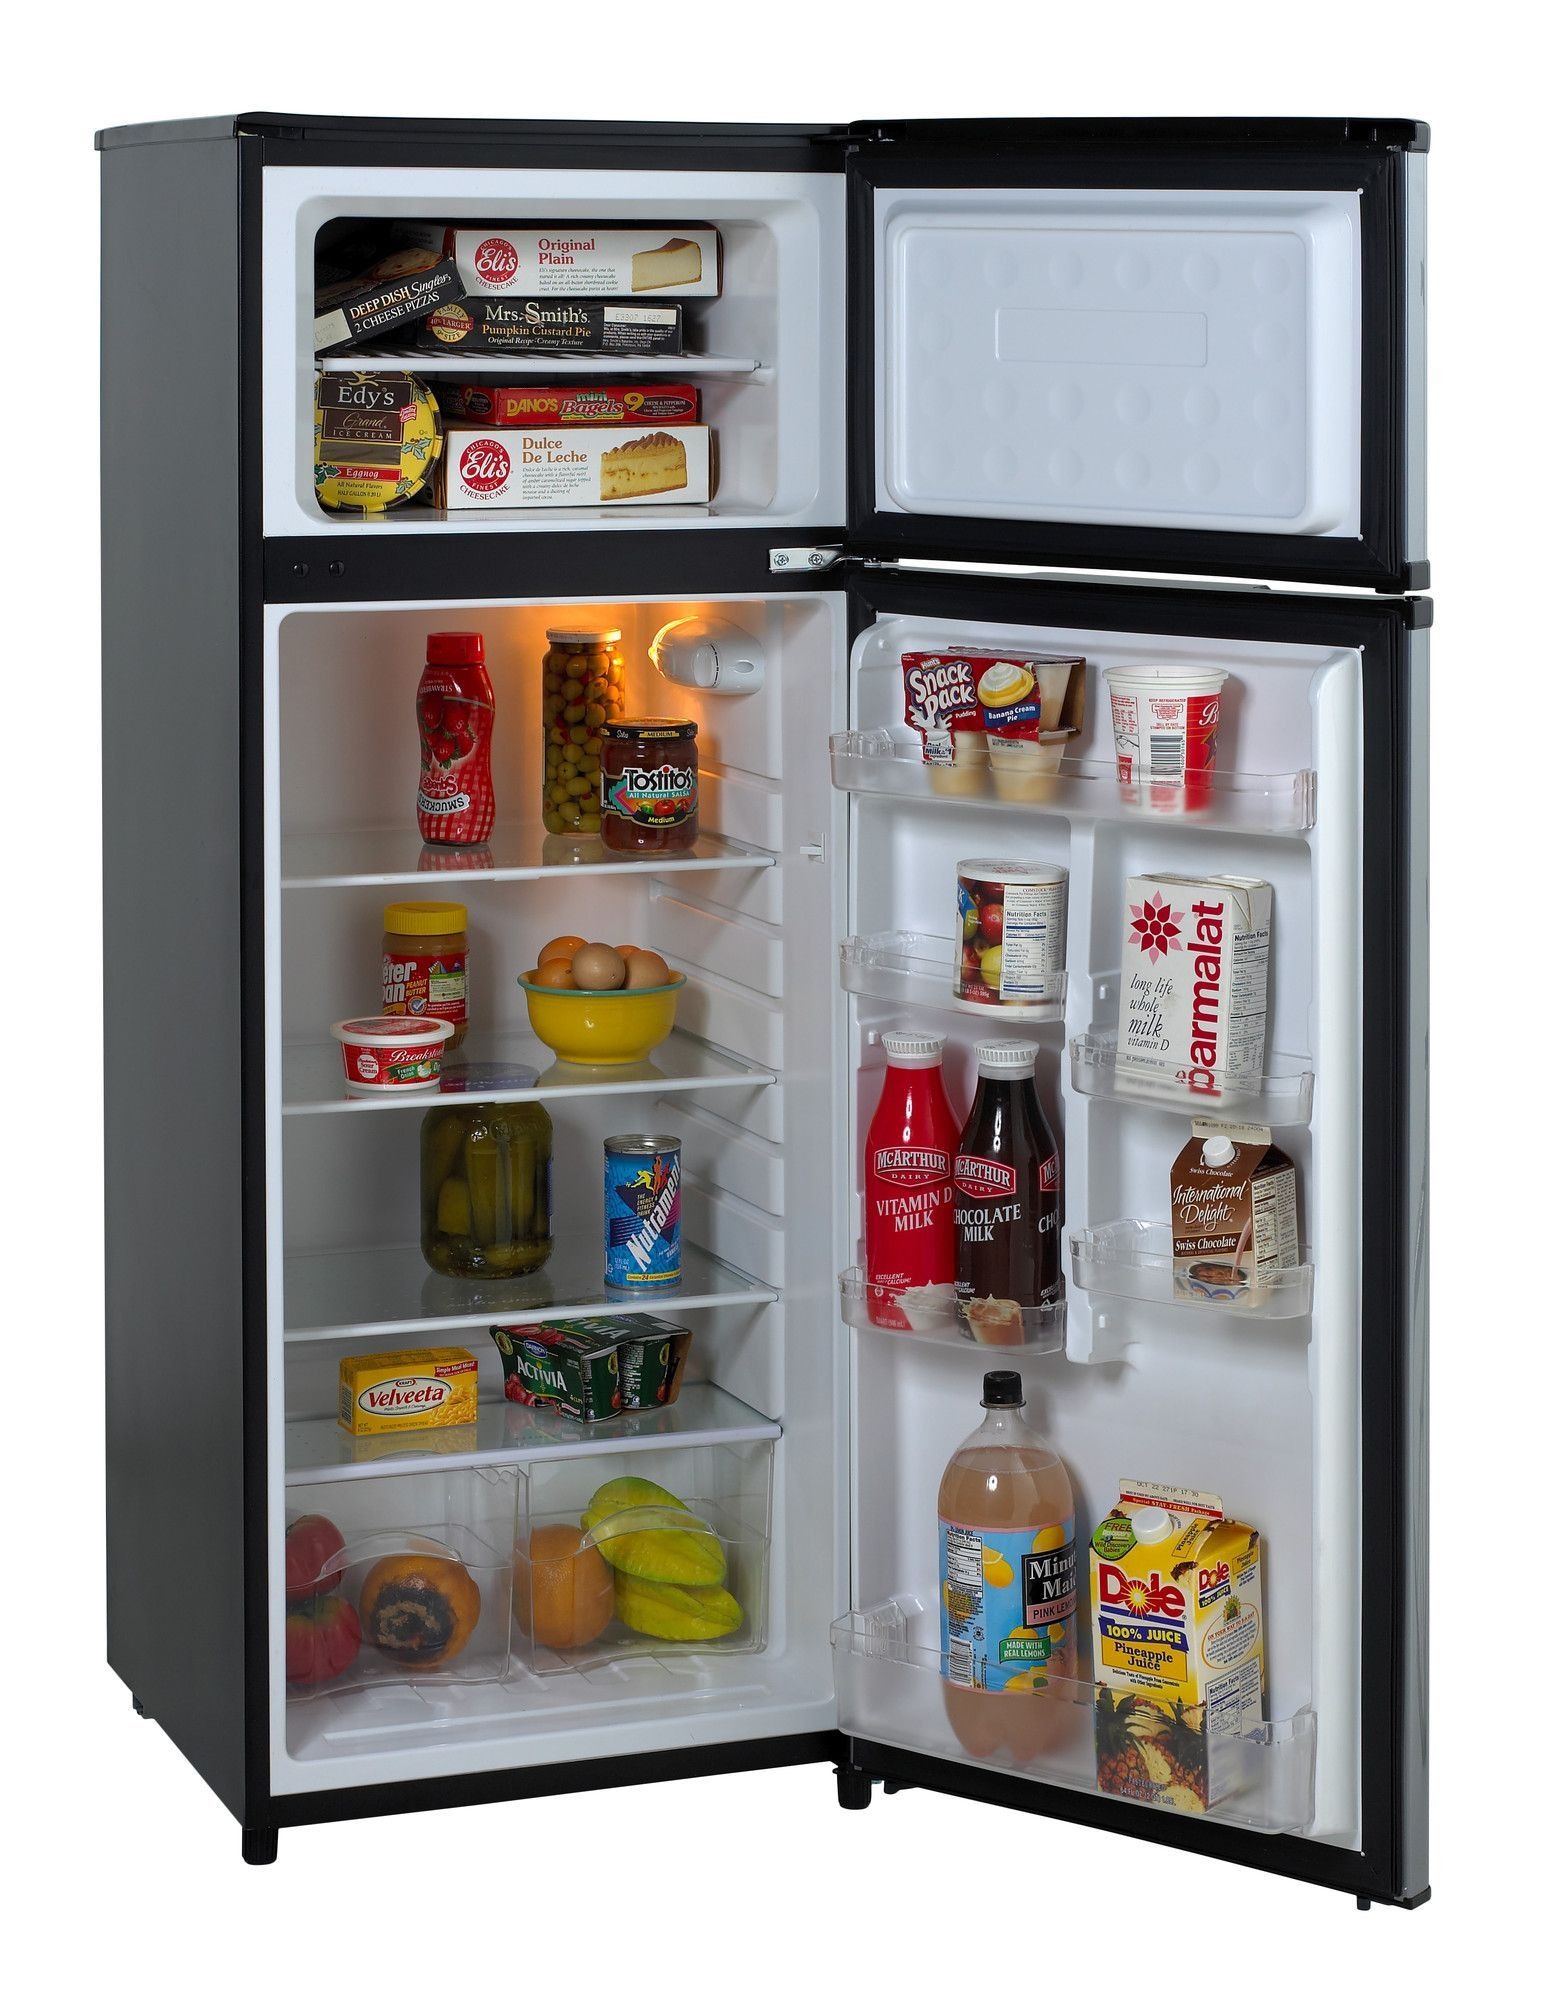 Features Reversible Doors Left Or Right Swing 1 Door Rack Holds 2 Liter Bottles See Apartment Size Refrigerator Apartment Refrigerator Small Refrigerator